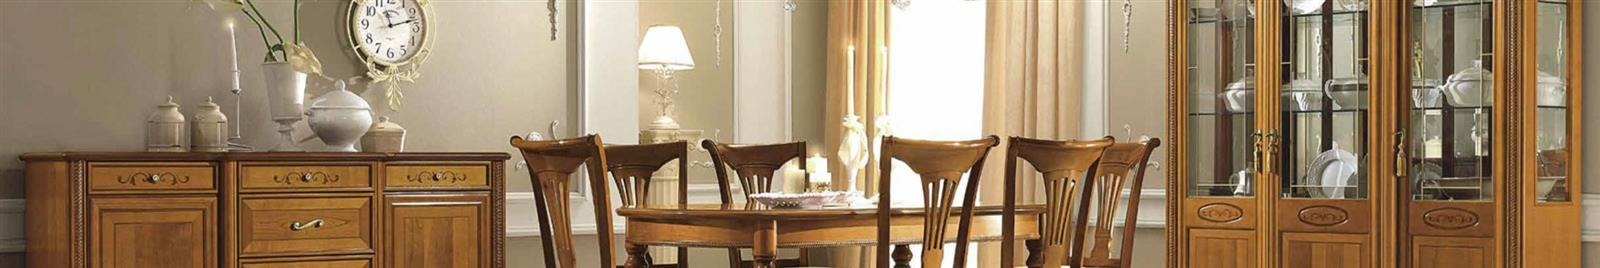 Siena Day - Cherry - Classic Italian Dining Furniture